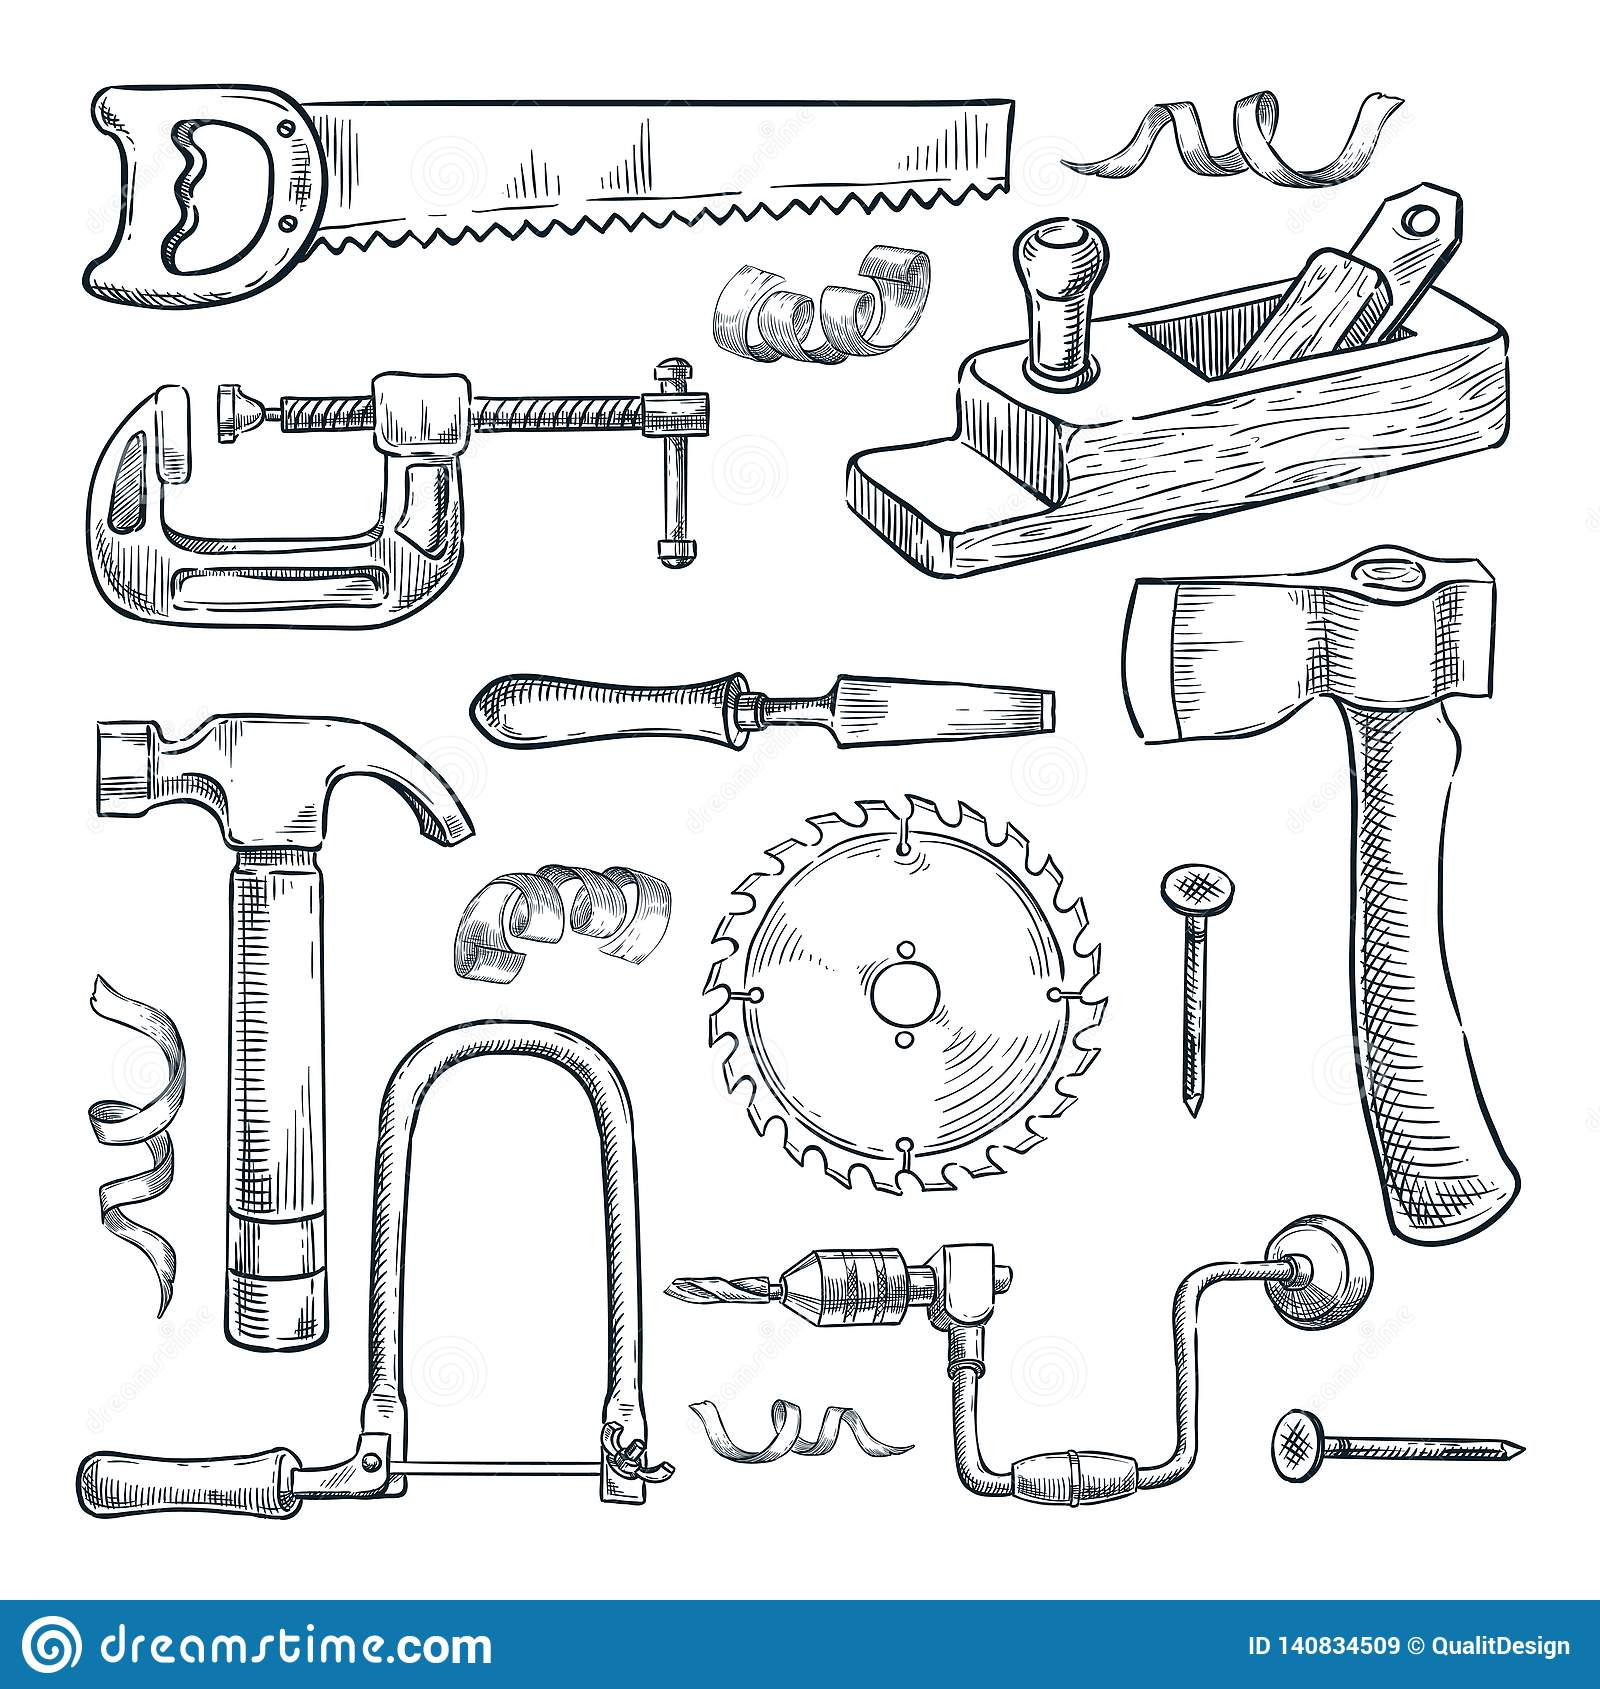 woodwork and carpentry tools set. vector sketch illustration